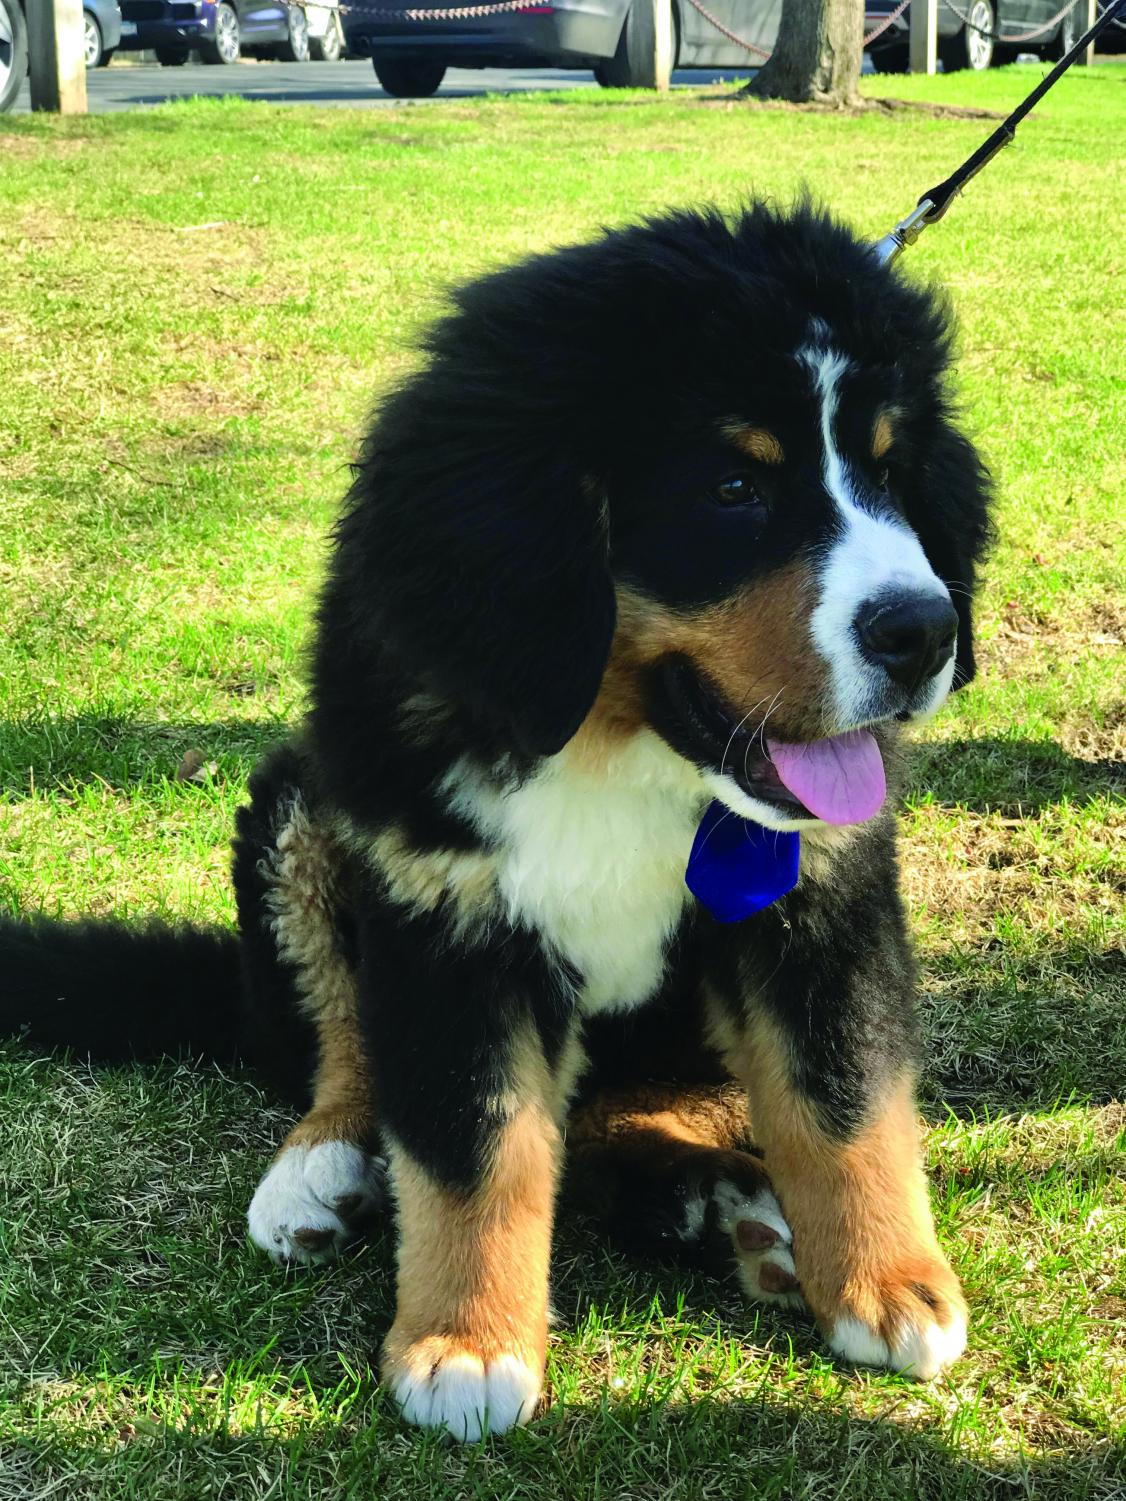 Even on the hottest days, Joe Mairs '20's Bernese Mountain Dog Gary is a staple at boys' tennis matches.